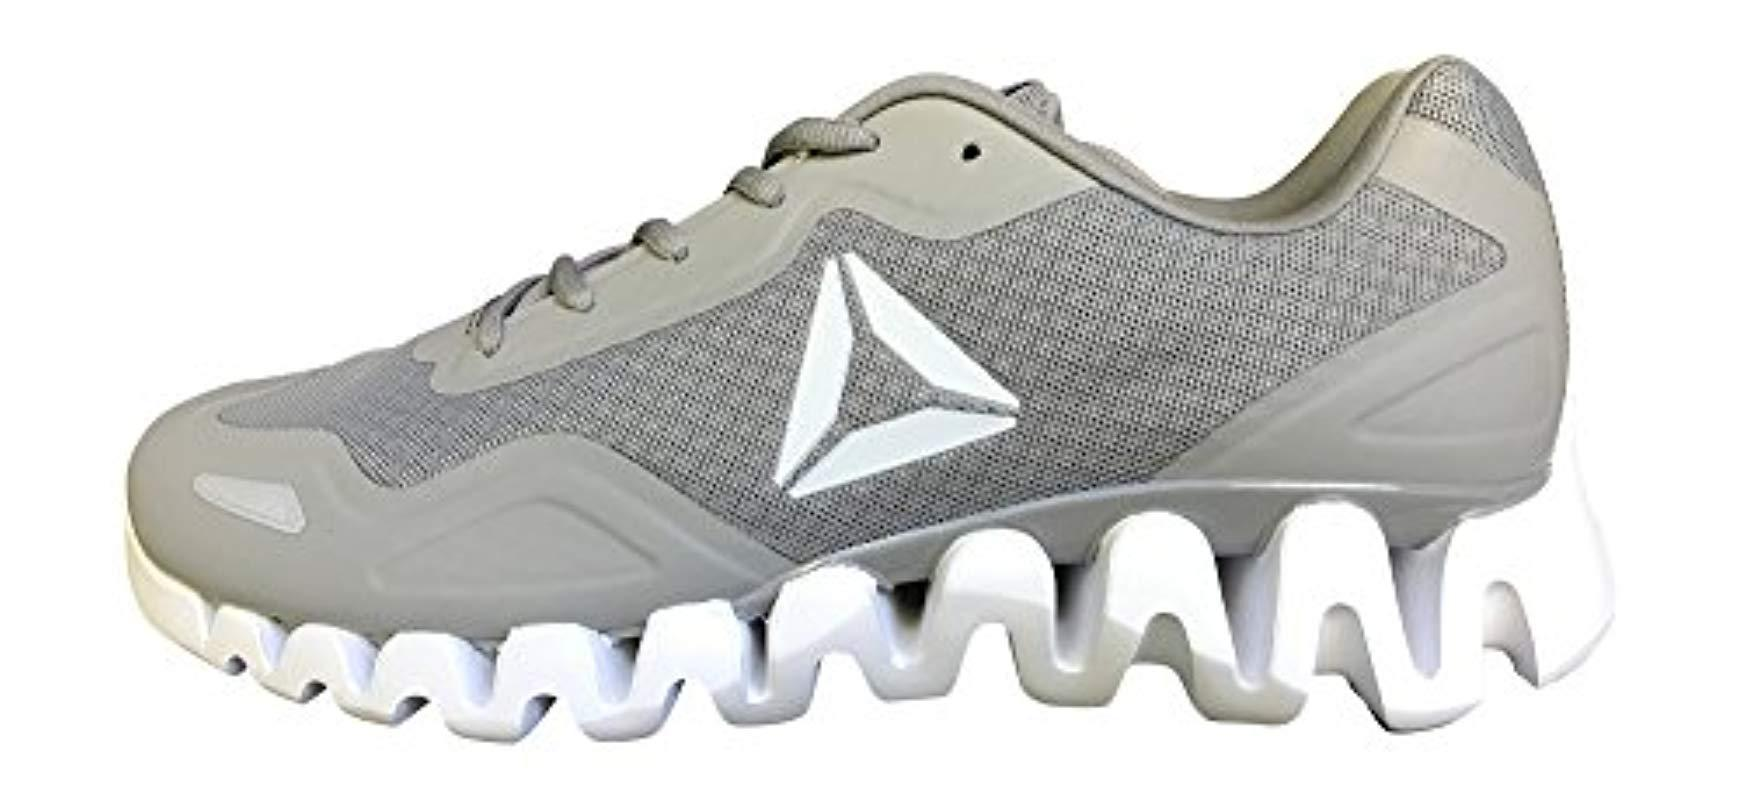 Lyst - Reebok Zigpulse Running Shoe Carbon in Gray for Men - Save ... 015bd2280